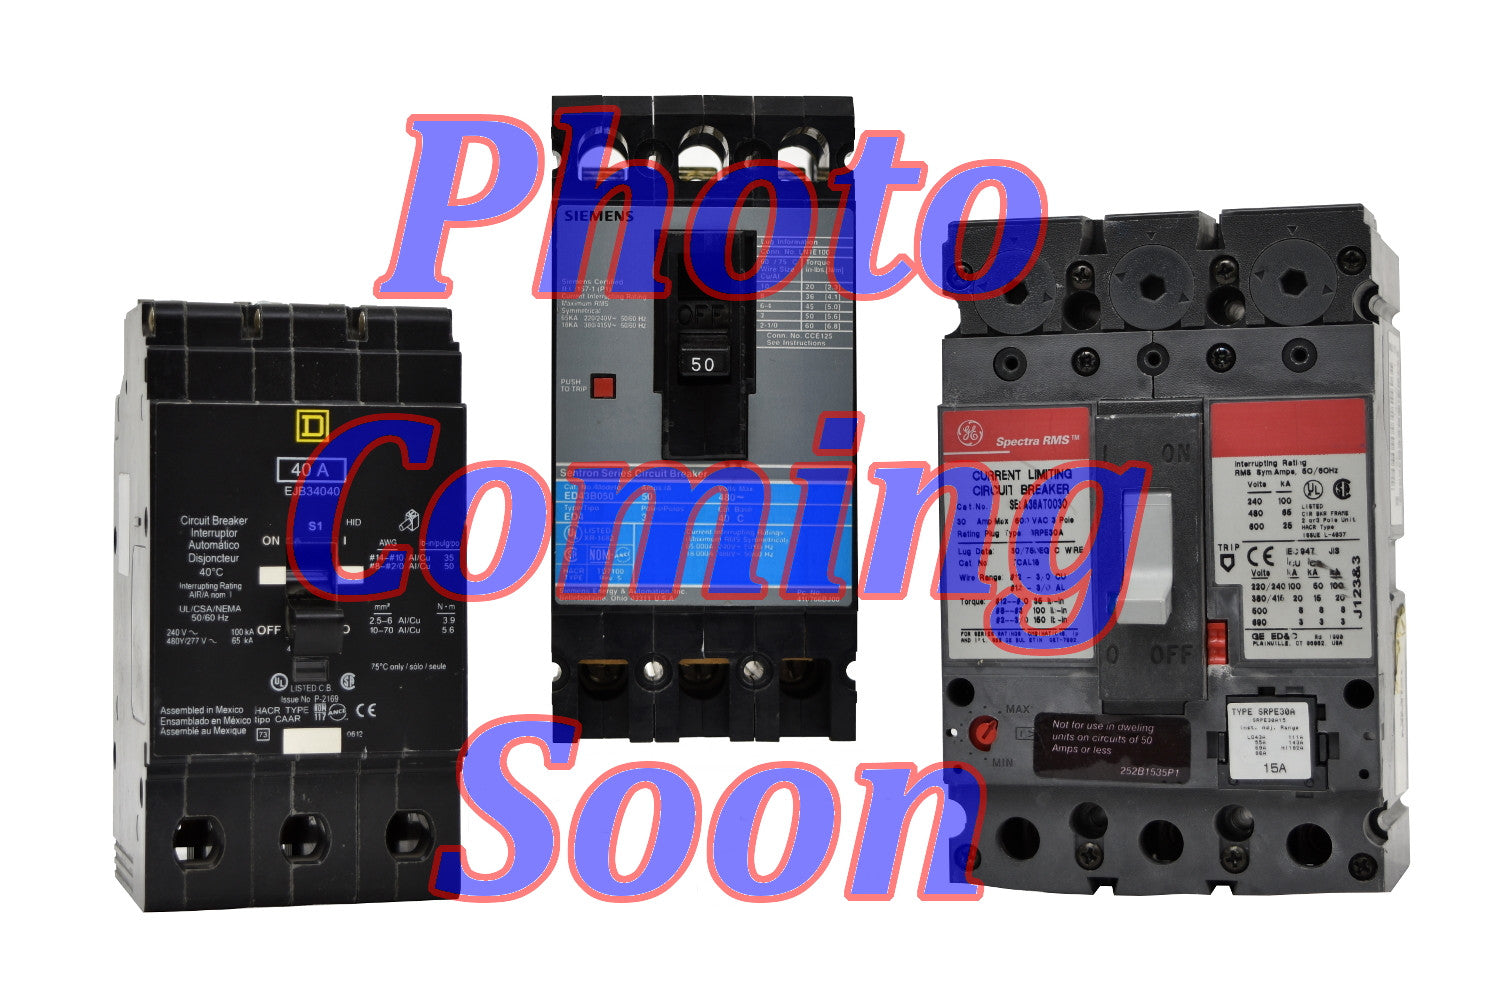 Siemens CJ2B225 Circuit Breakers